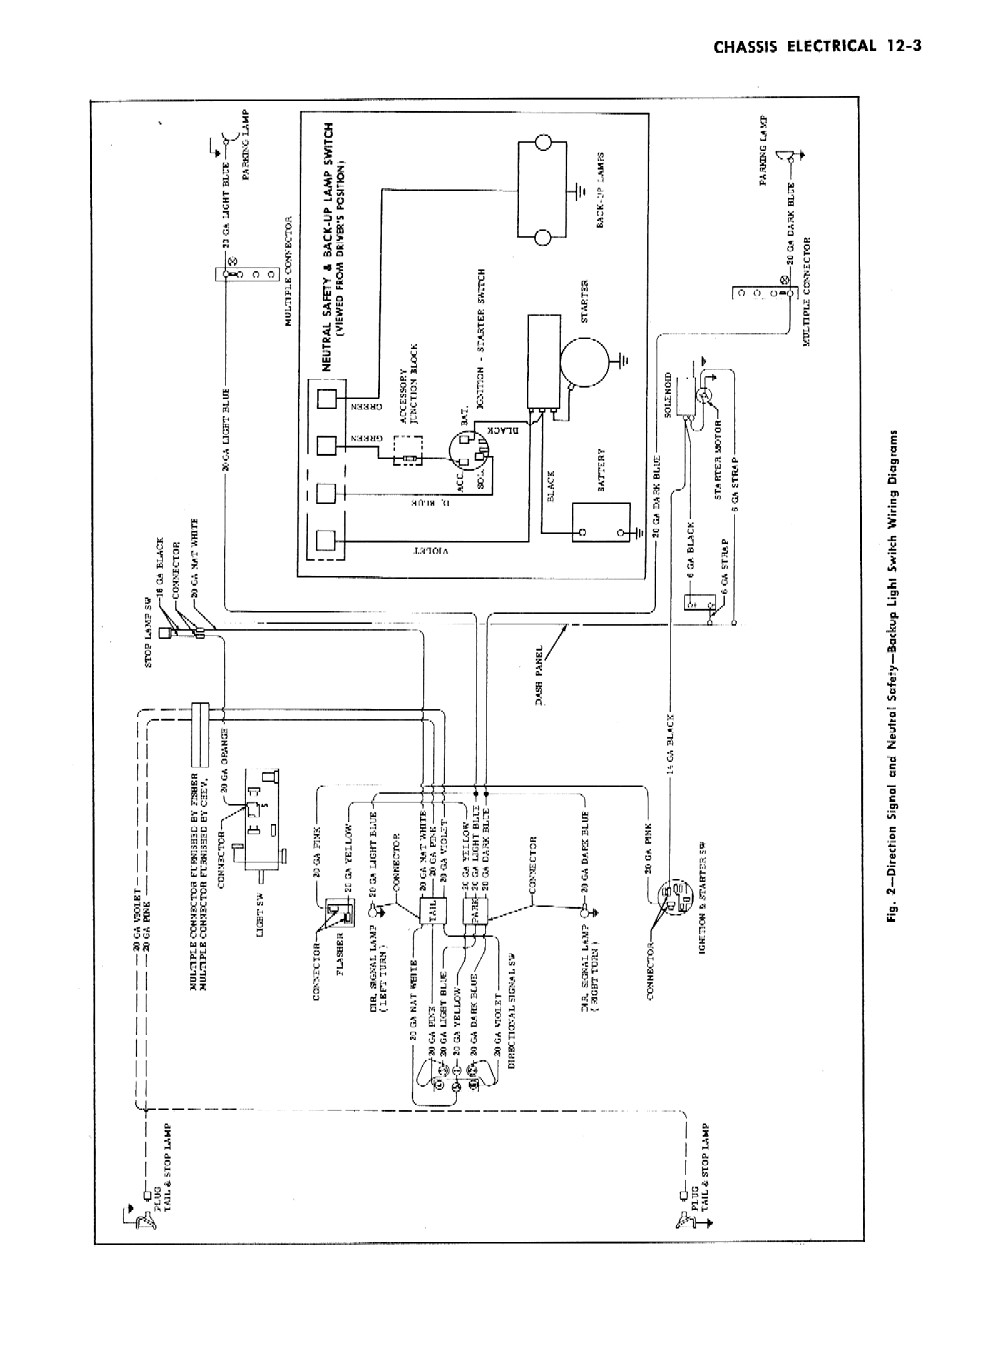 Dome Light Wiring Diagram 1957 Chevy Bel Air